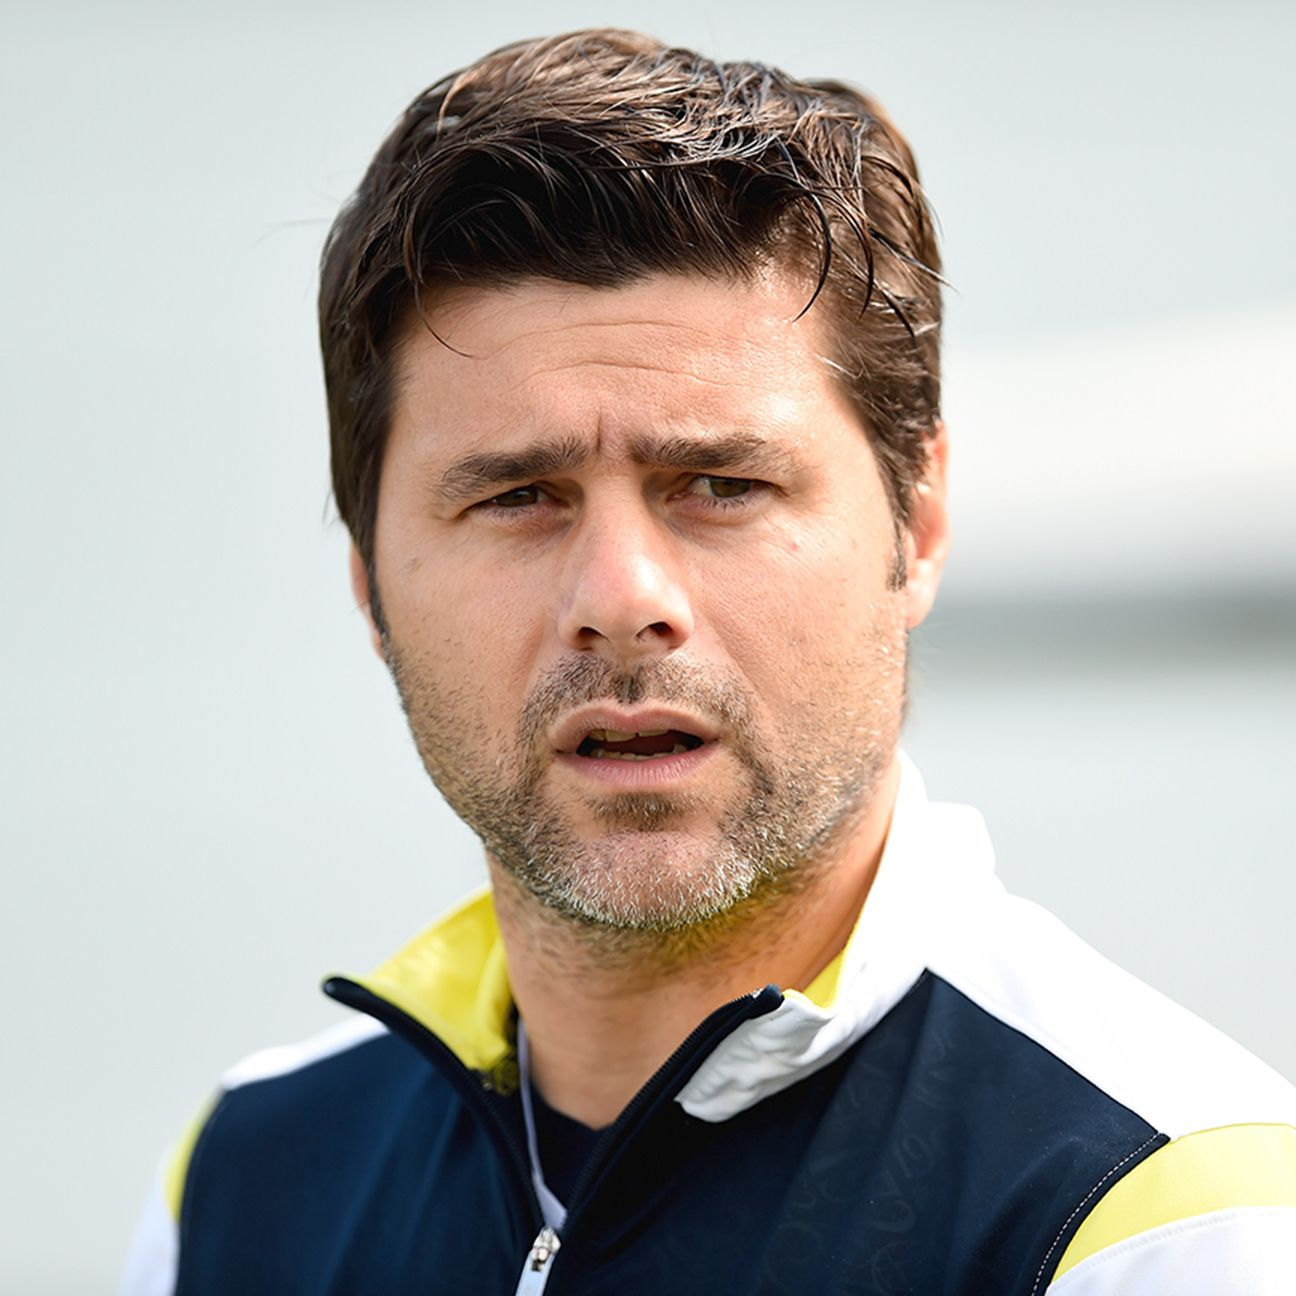 Spurs fans will be curious to see how Mauricio Pochettino's side rebound from their Liverpool defeat.